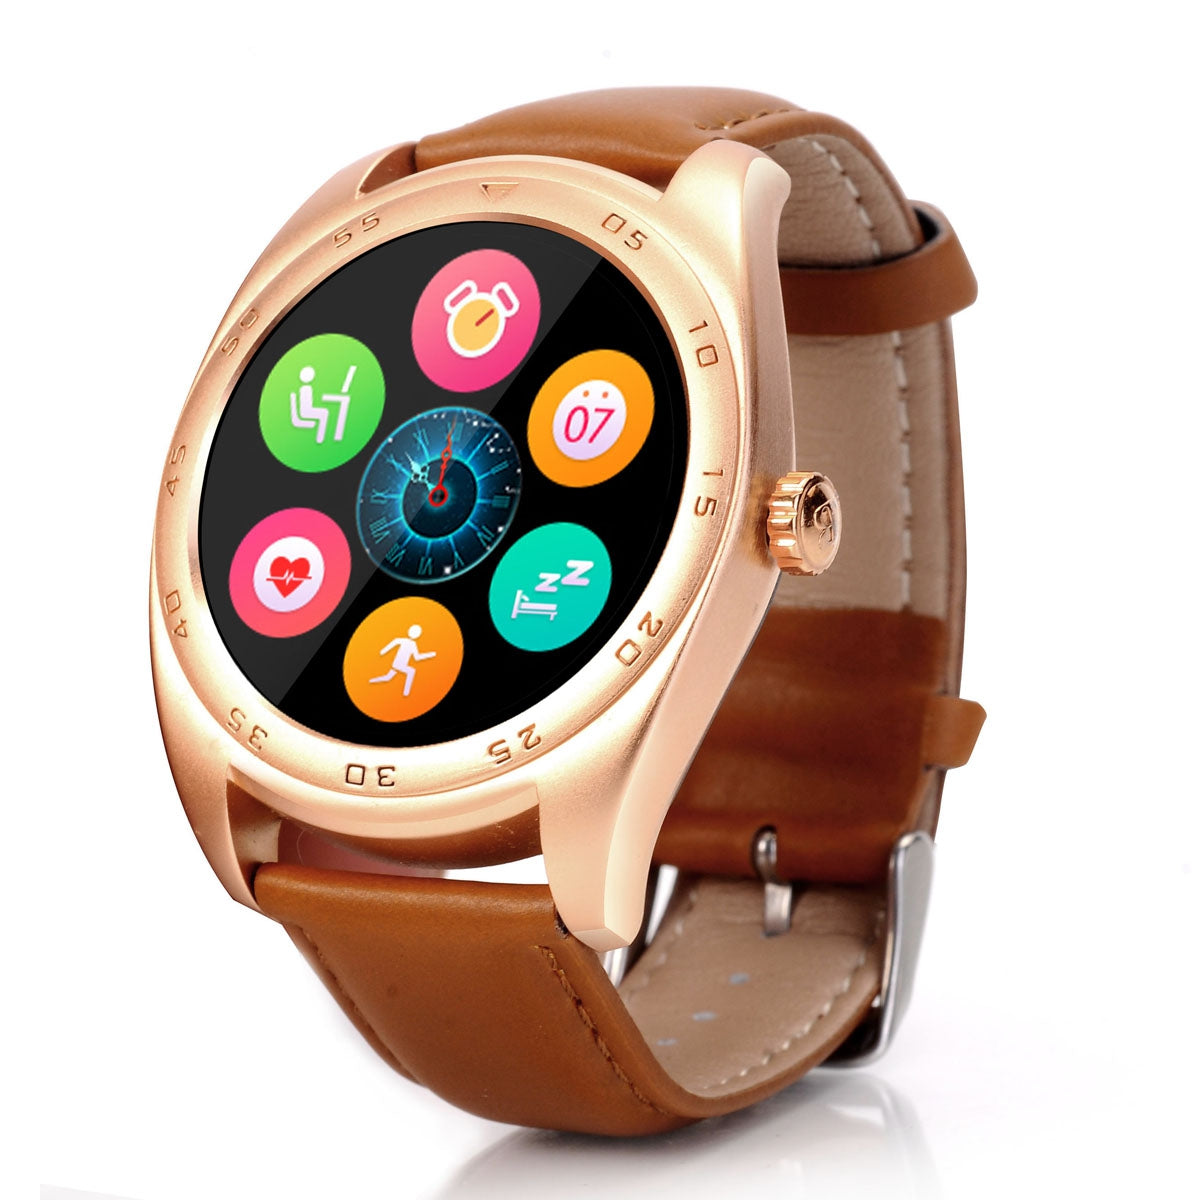 CACGO K89 Bluetooth 4.0 Heart Rate Monitor Smart Watch with Three-axis Accelerometer LoudspeakerGOLDEN / LEATHER BAND